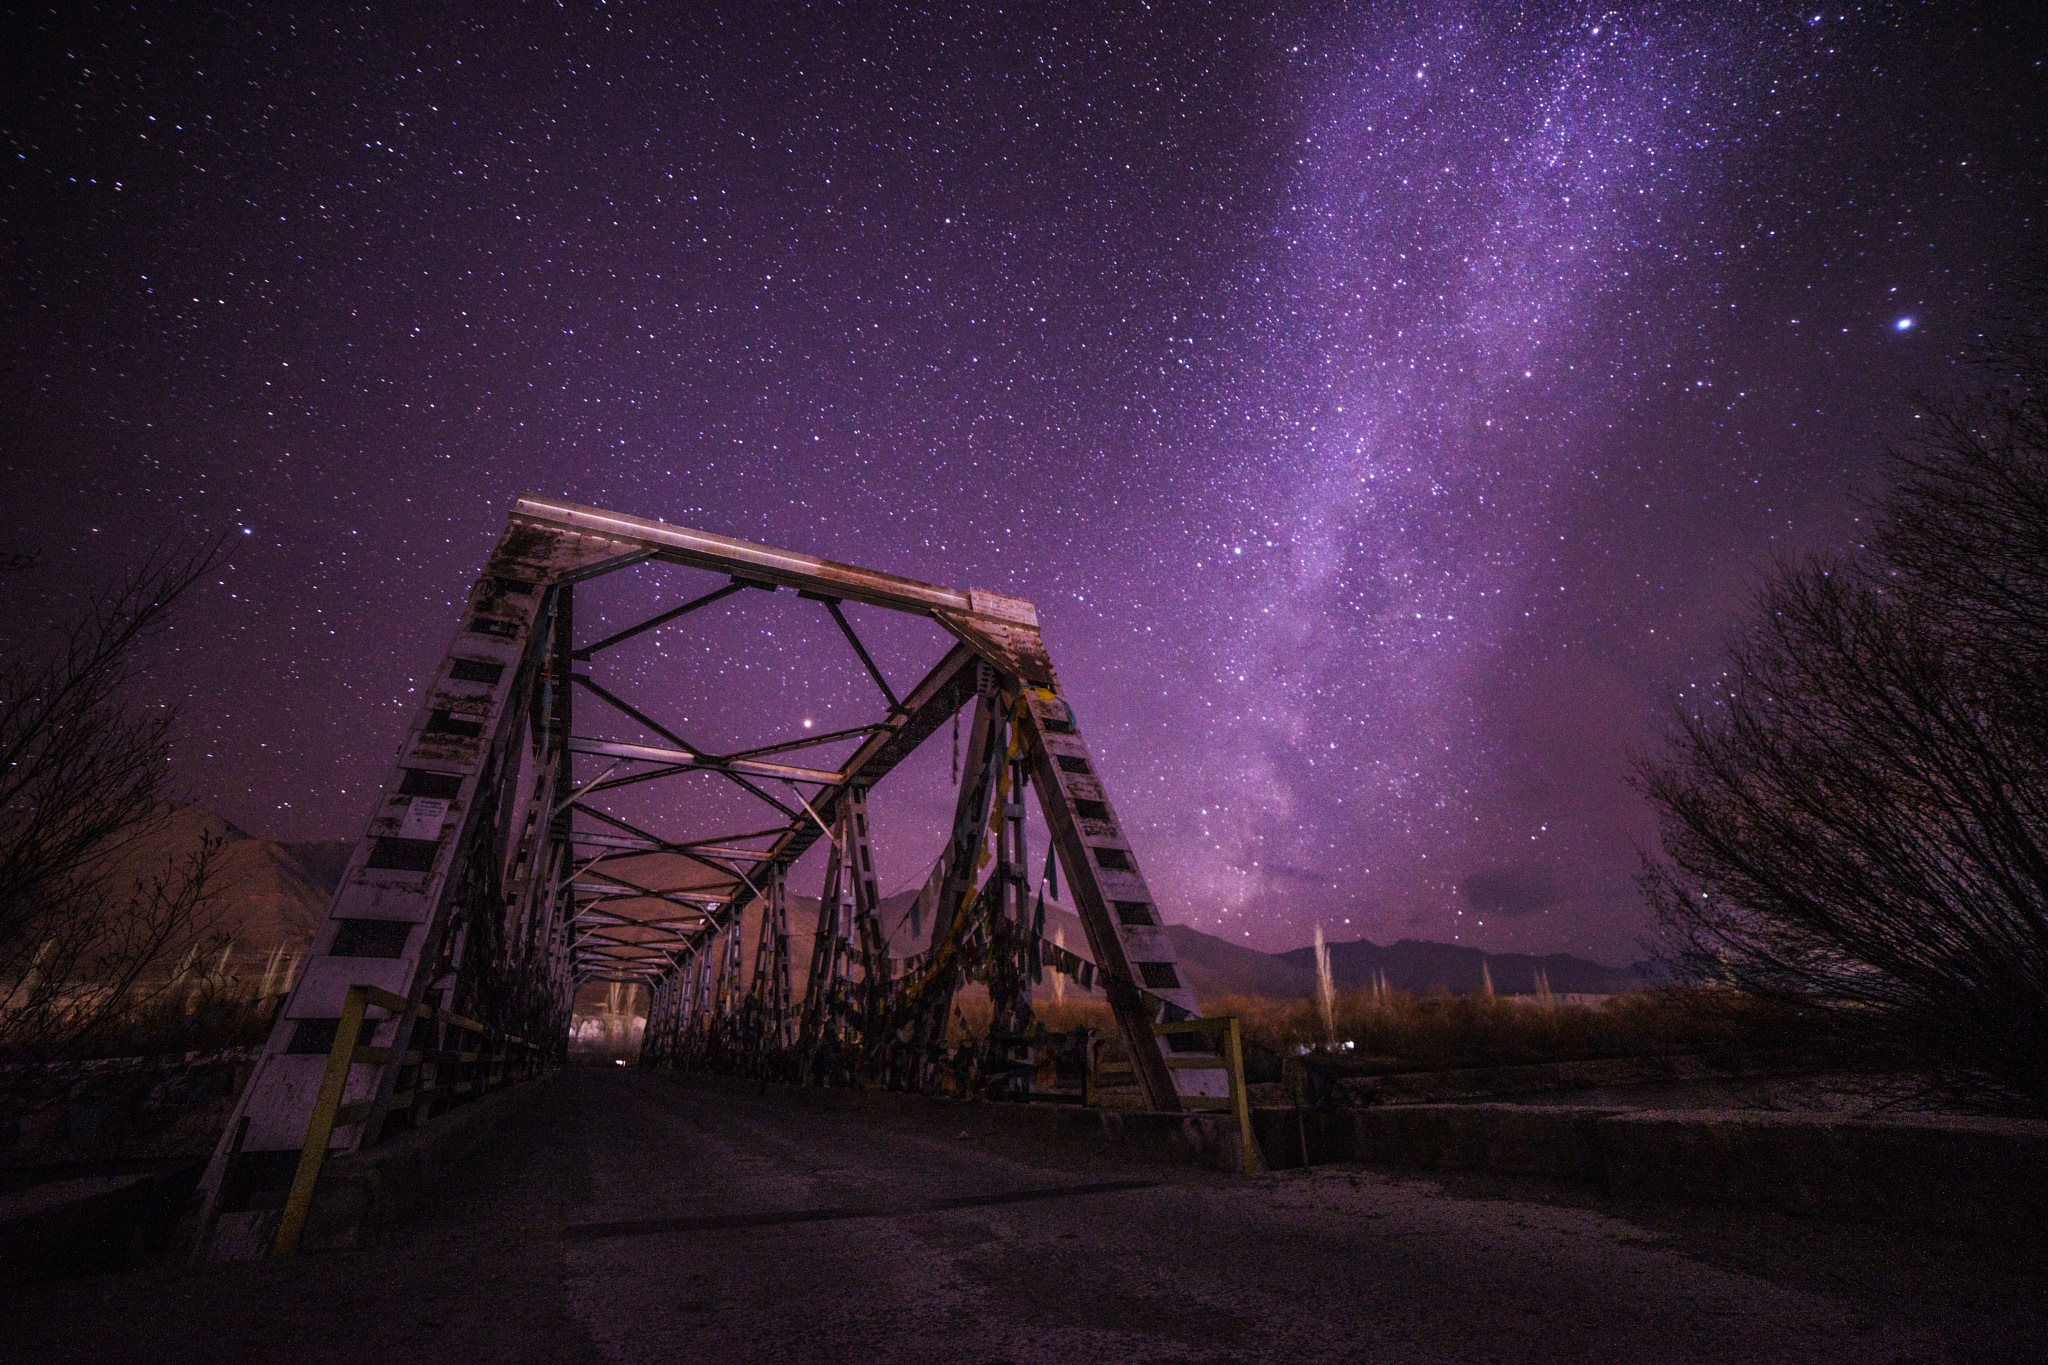 When the night falls by Ton Kuper